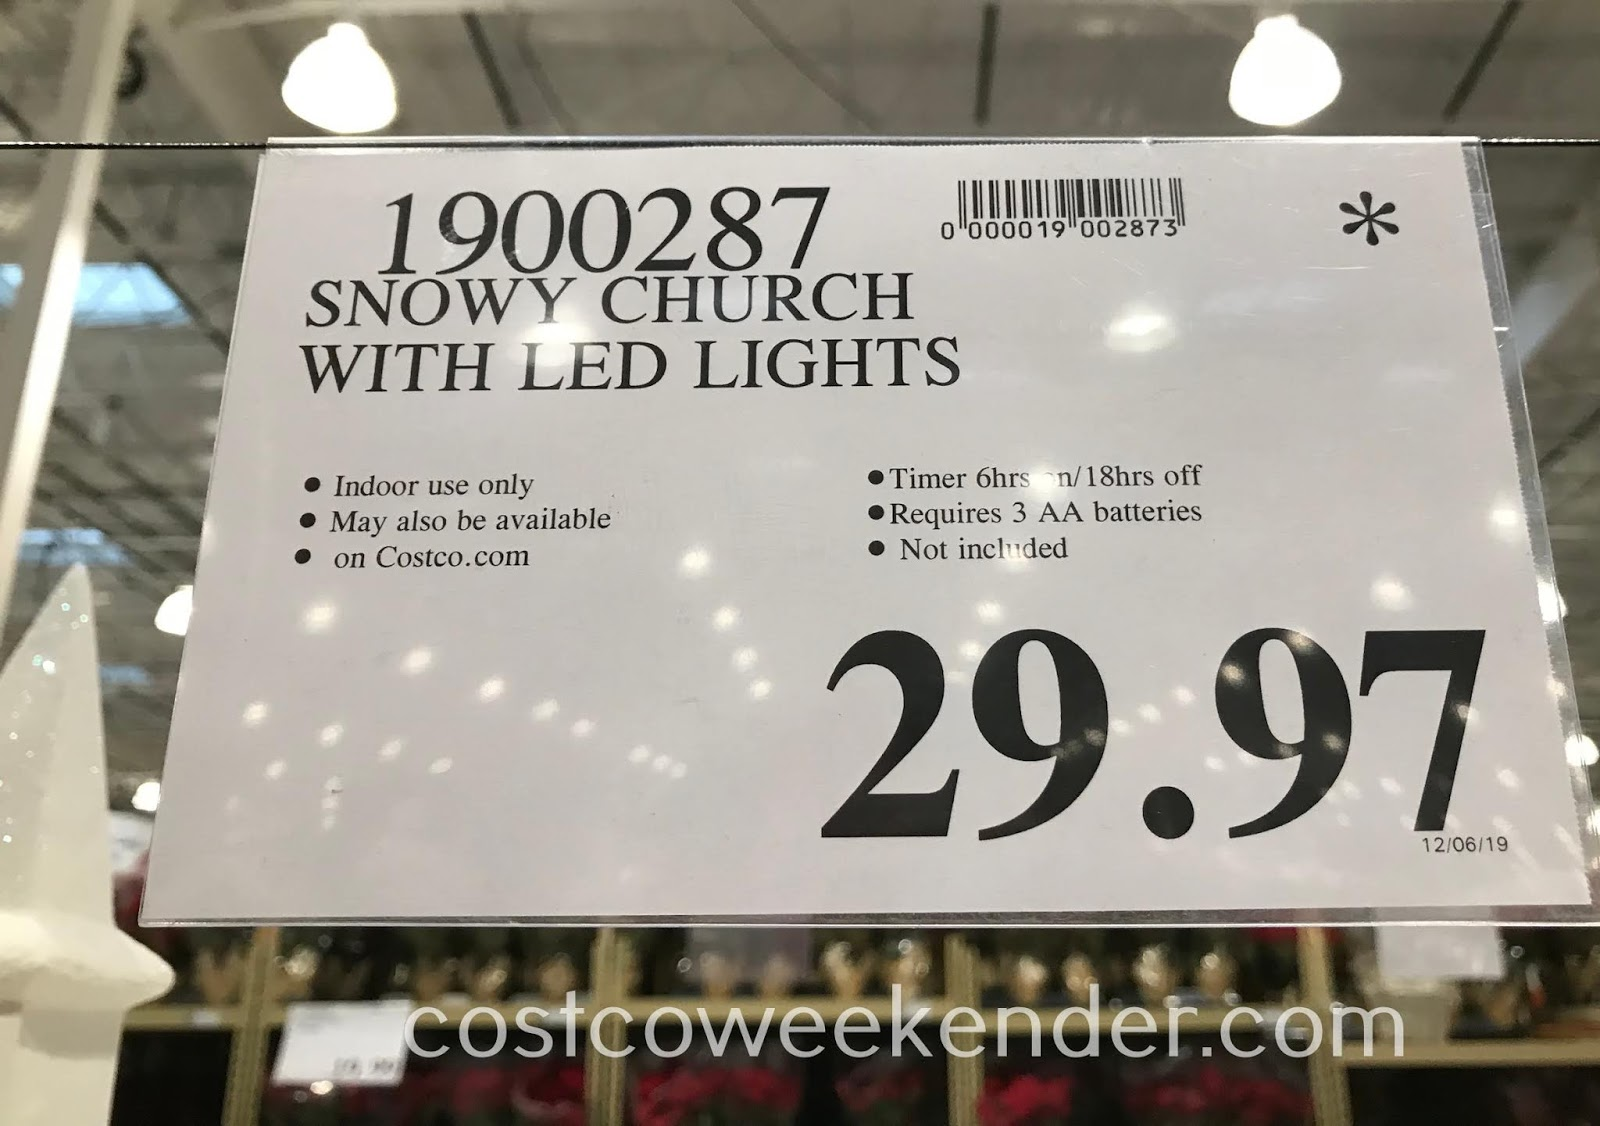 Deal for the Snowy Church with LED Lights at Costco